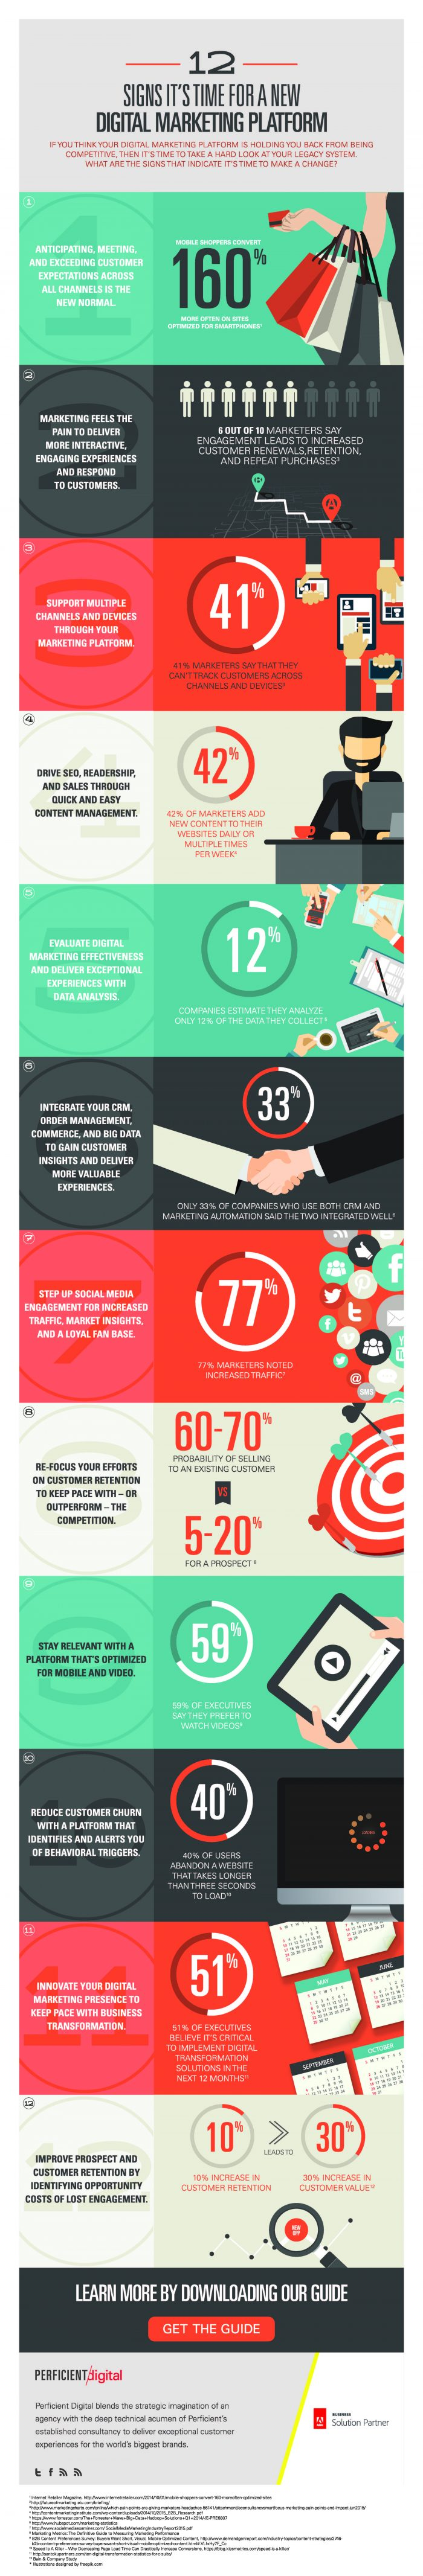 adobe_12-signs_infographic